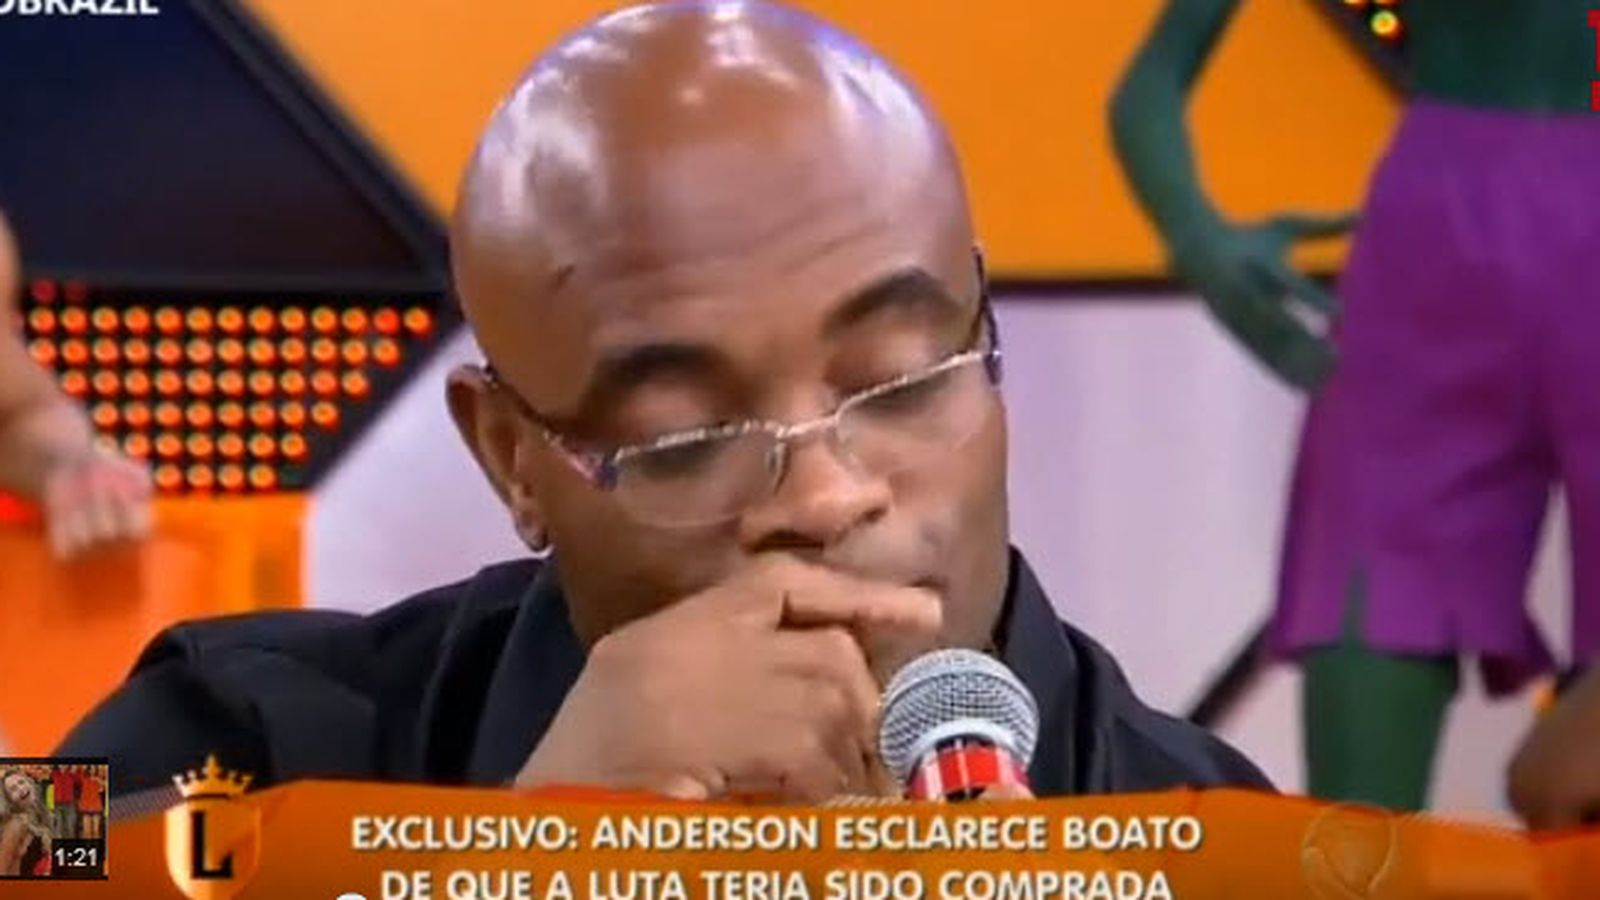 Anderson Silva weeps on Brazilian TV when asked about throwing Weidman fight at UFC 162